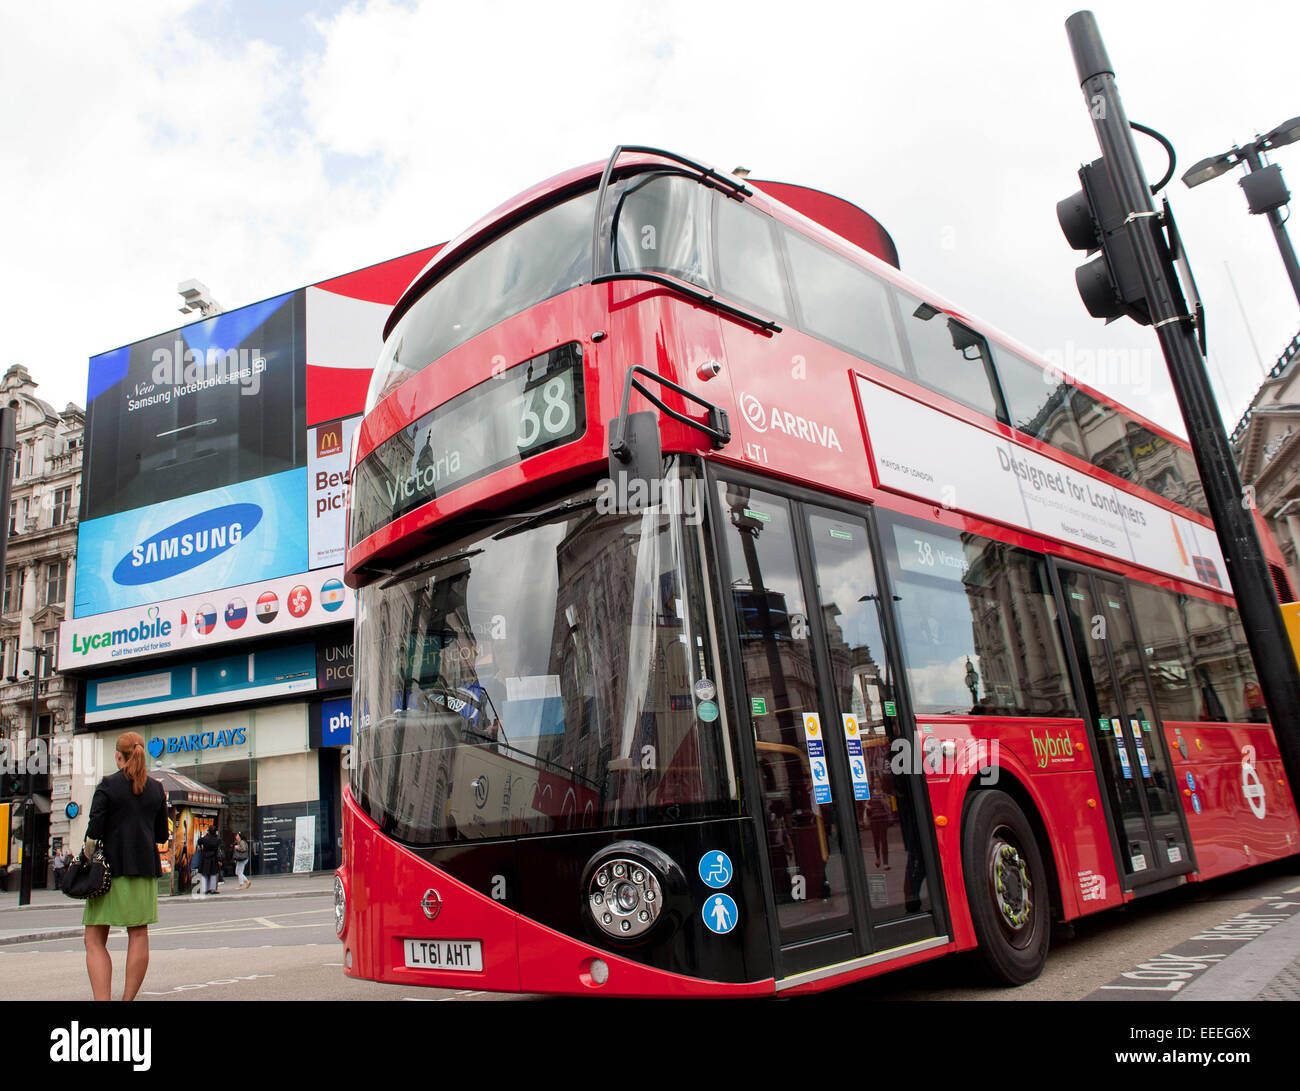 The iconc New Bus for London at Picadilly Circus - Stock Image